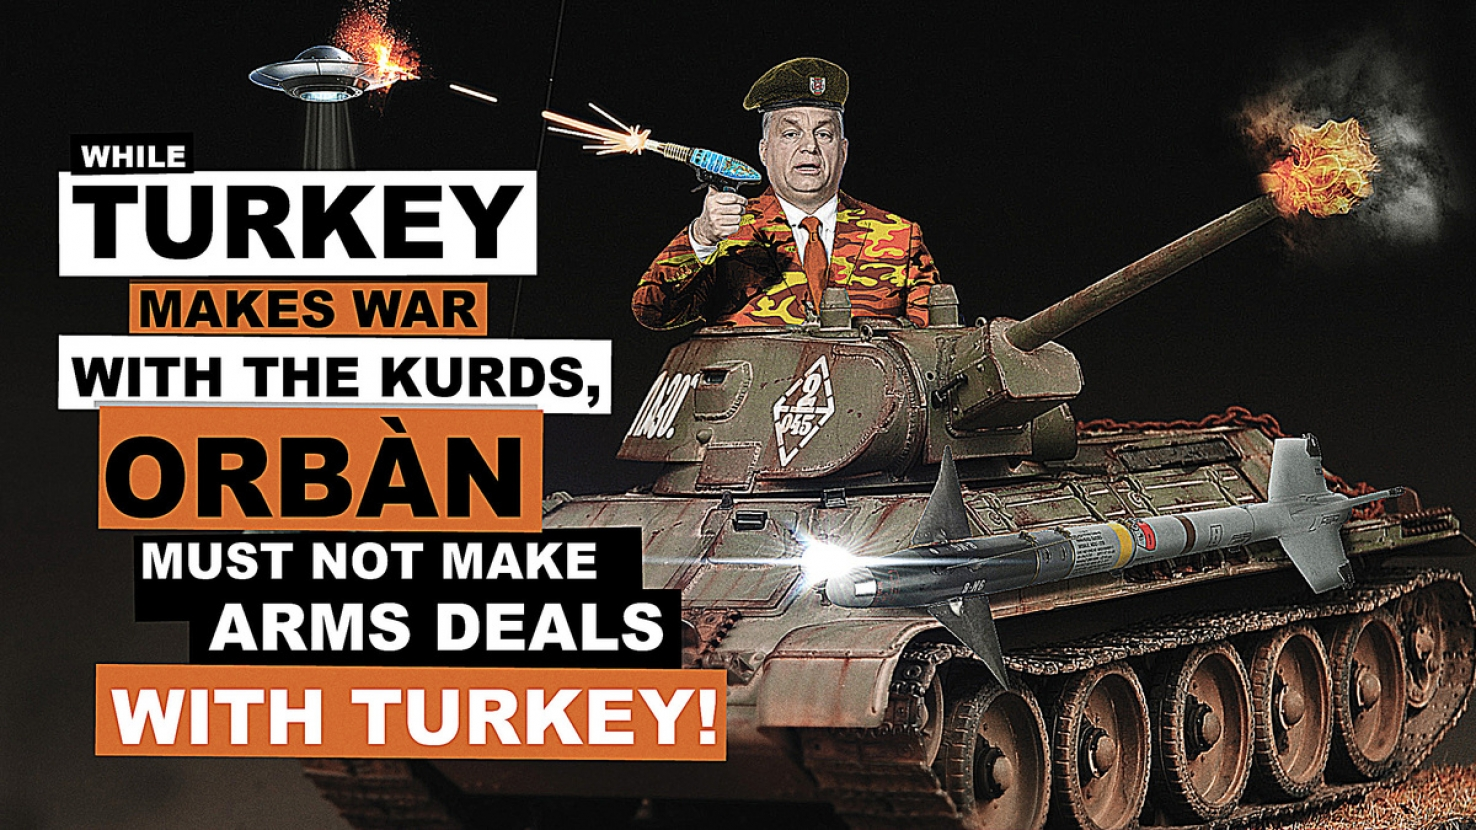 Parliamentary Resolution Proposal  Initiating Immediate Termination of Arms Trade with Turkey